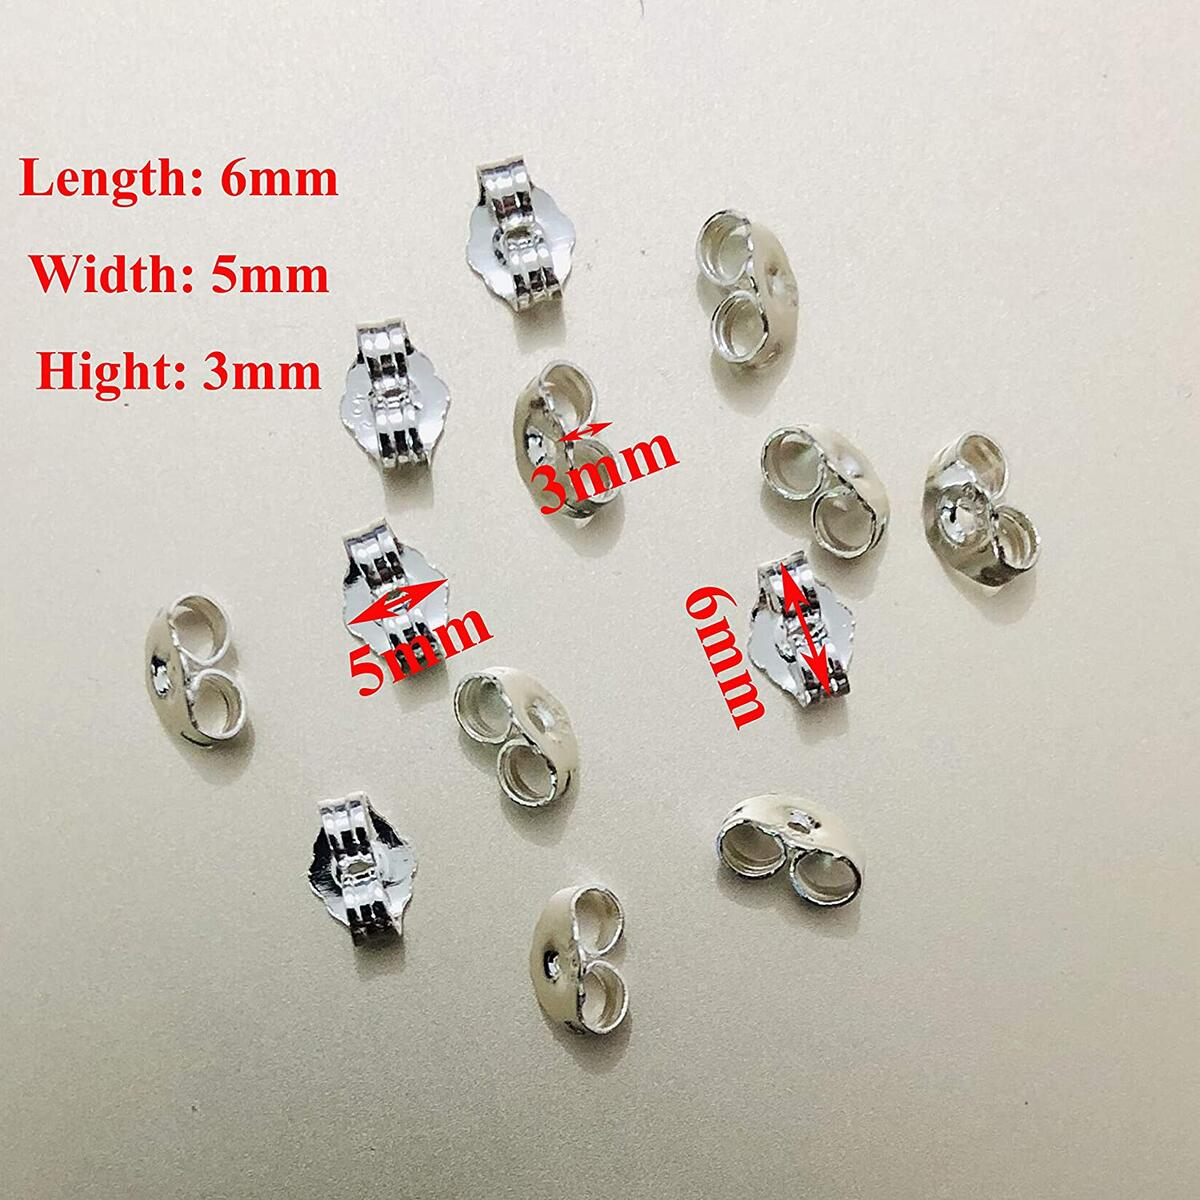 12pcs/6 Pairs 925 Sterling Silver Earring Backs Replacement Secure Ear Locking for Stud Earrings Ear Nut for Posts, 5x6mm